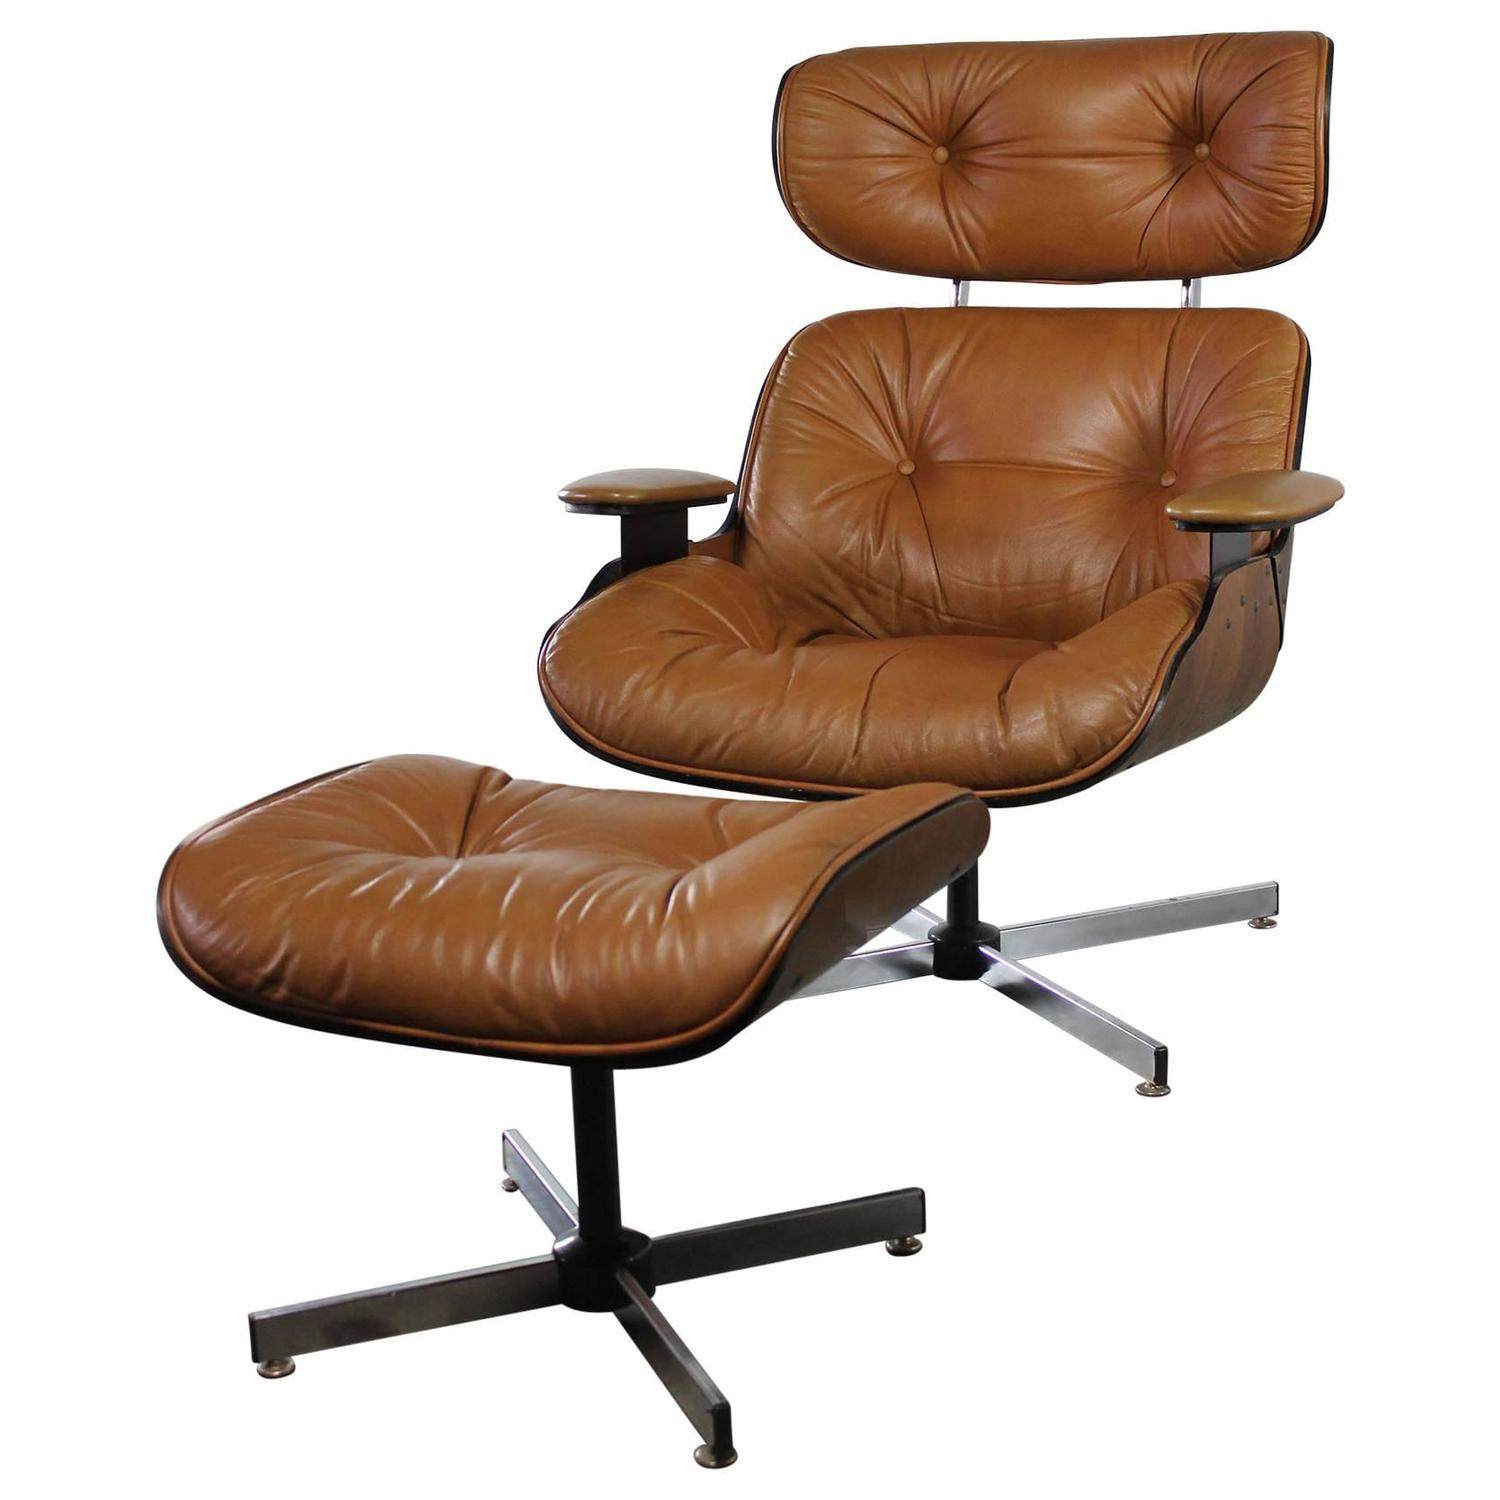 Astounding Mid Century Modern Plycraft Eames Style Lounge Chair And Pdpeps Interior Chair Design Pdpepsorg